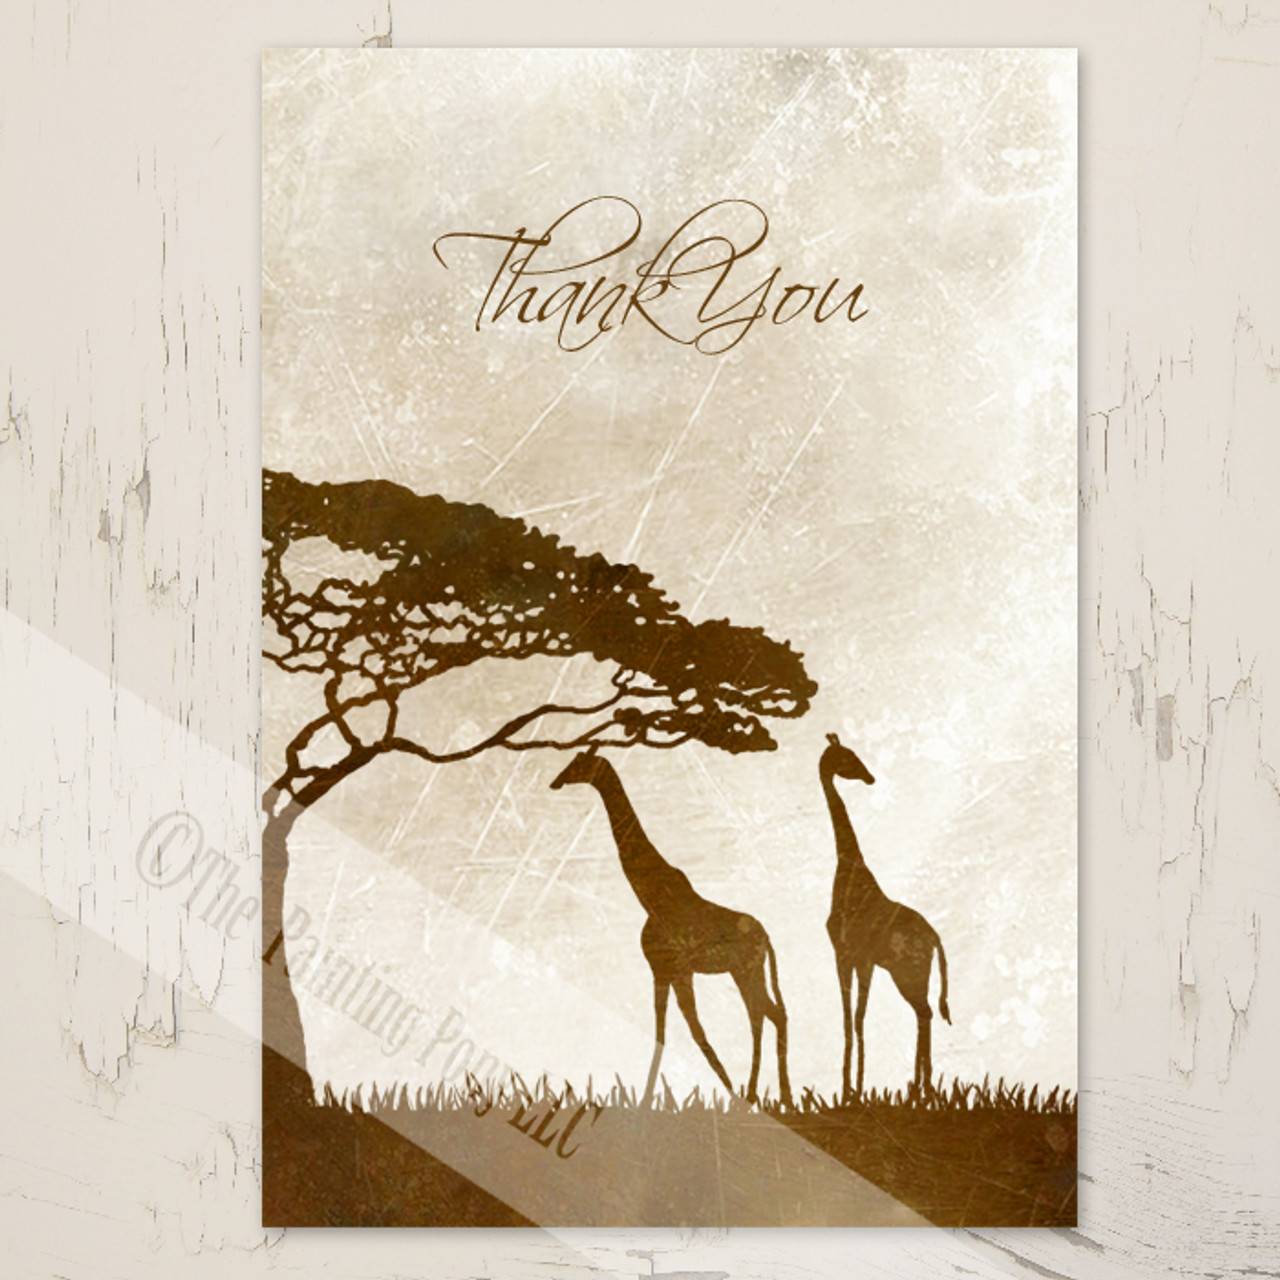 thank you note with african giraffes - Thank You Note Cards